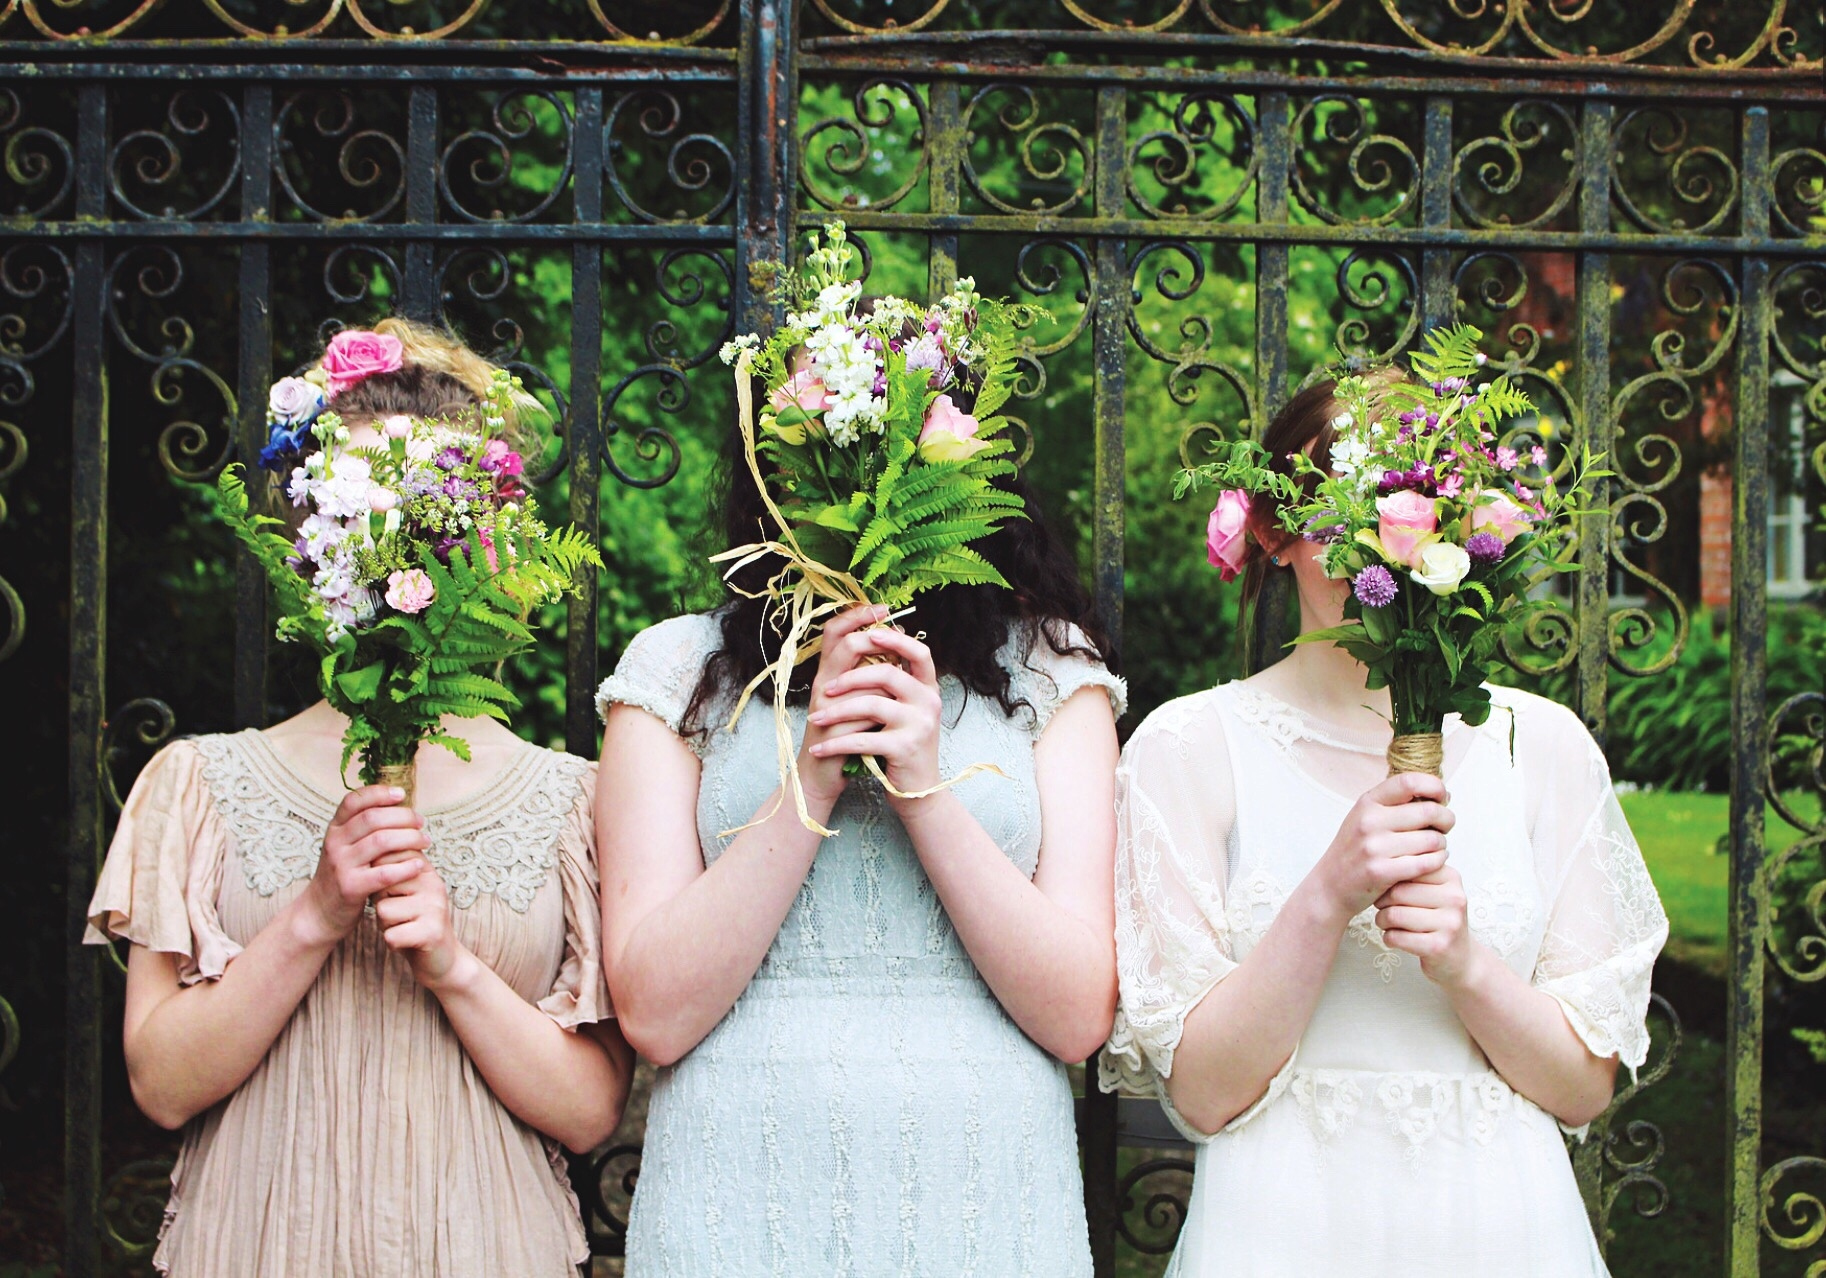 All the wedding floral trends you need to know about for 2018